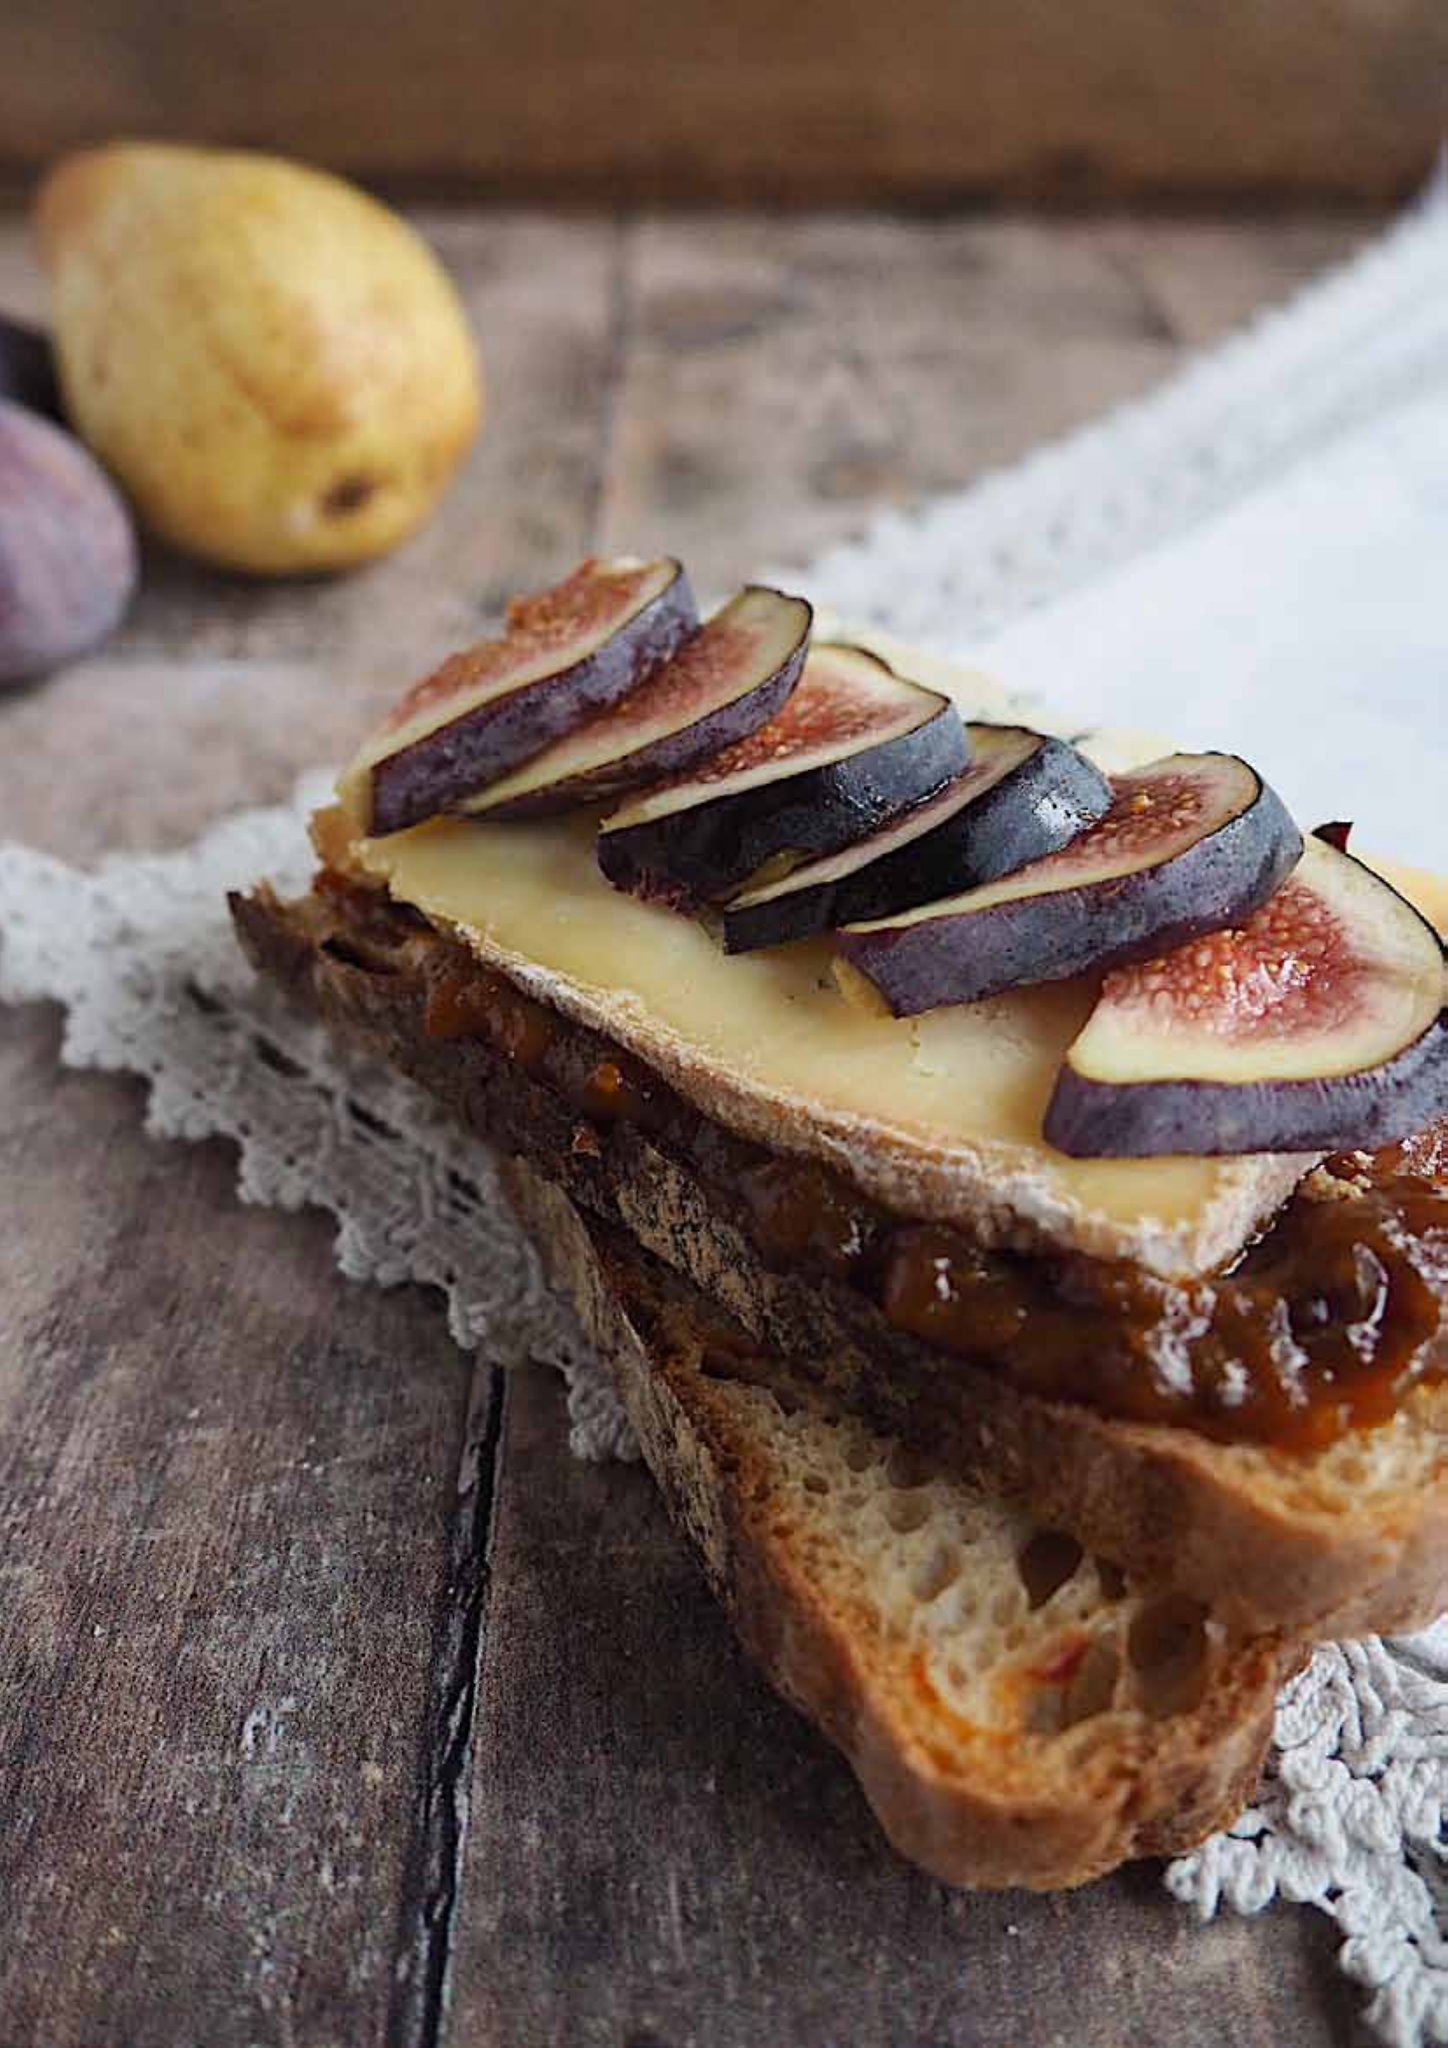 Dorset Blue Vinny Cheese with Woodbridge spiced pear chutney & figs on sourdough